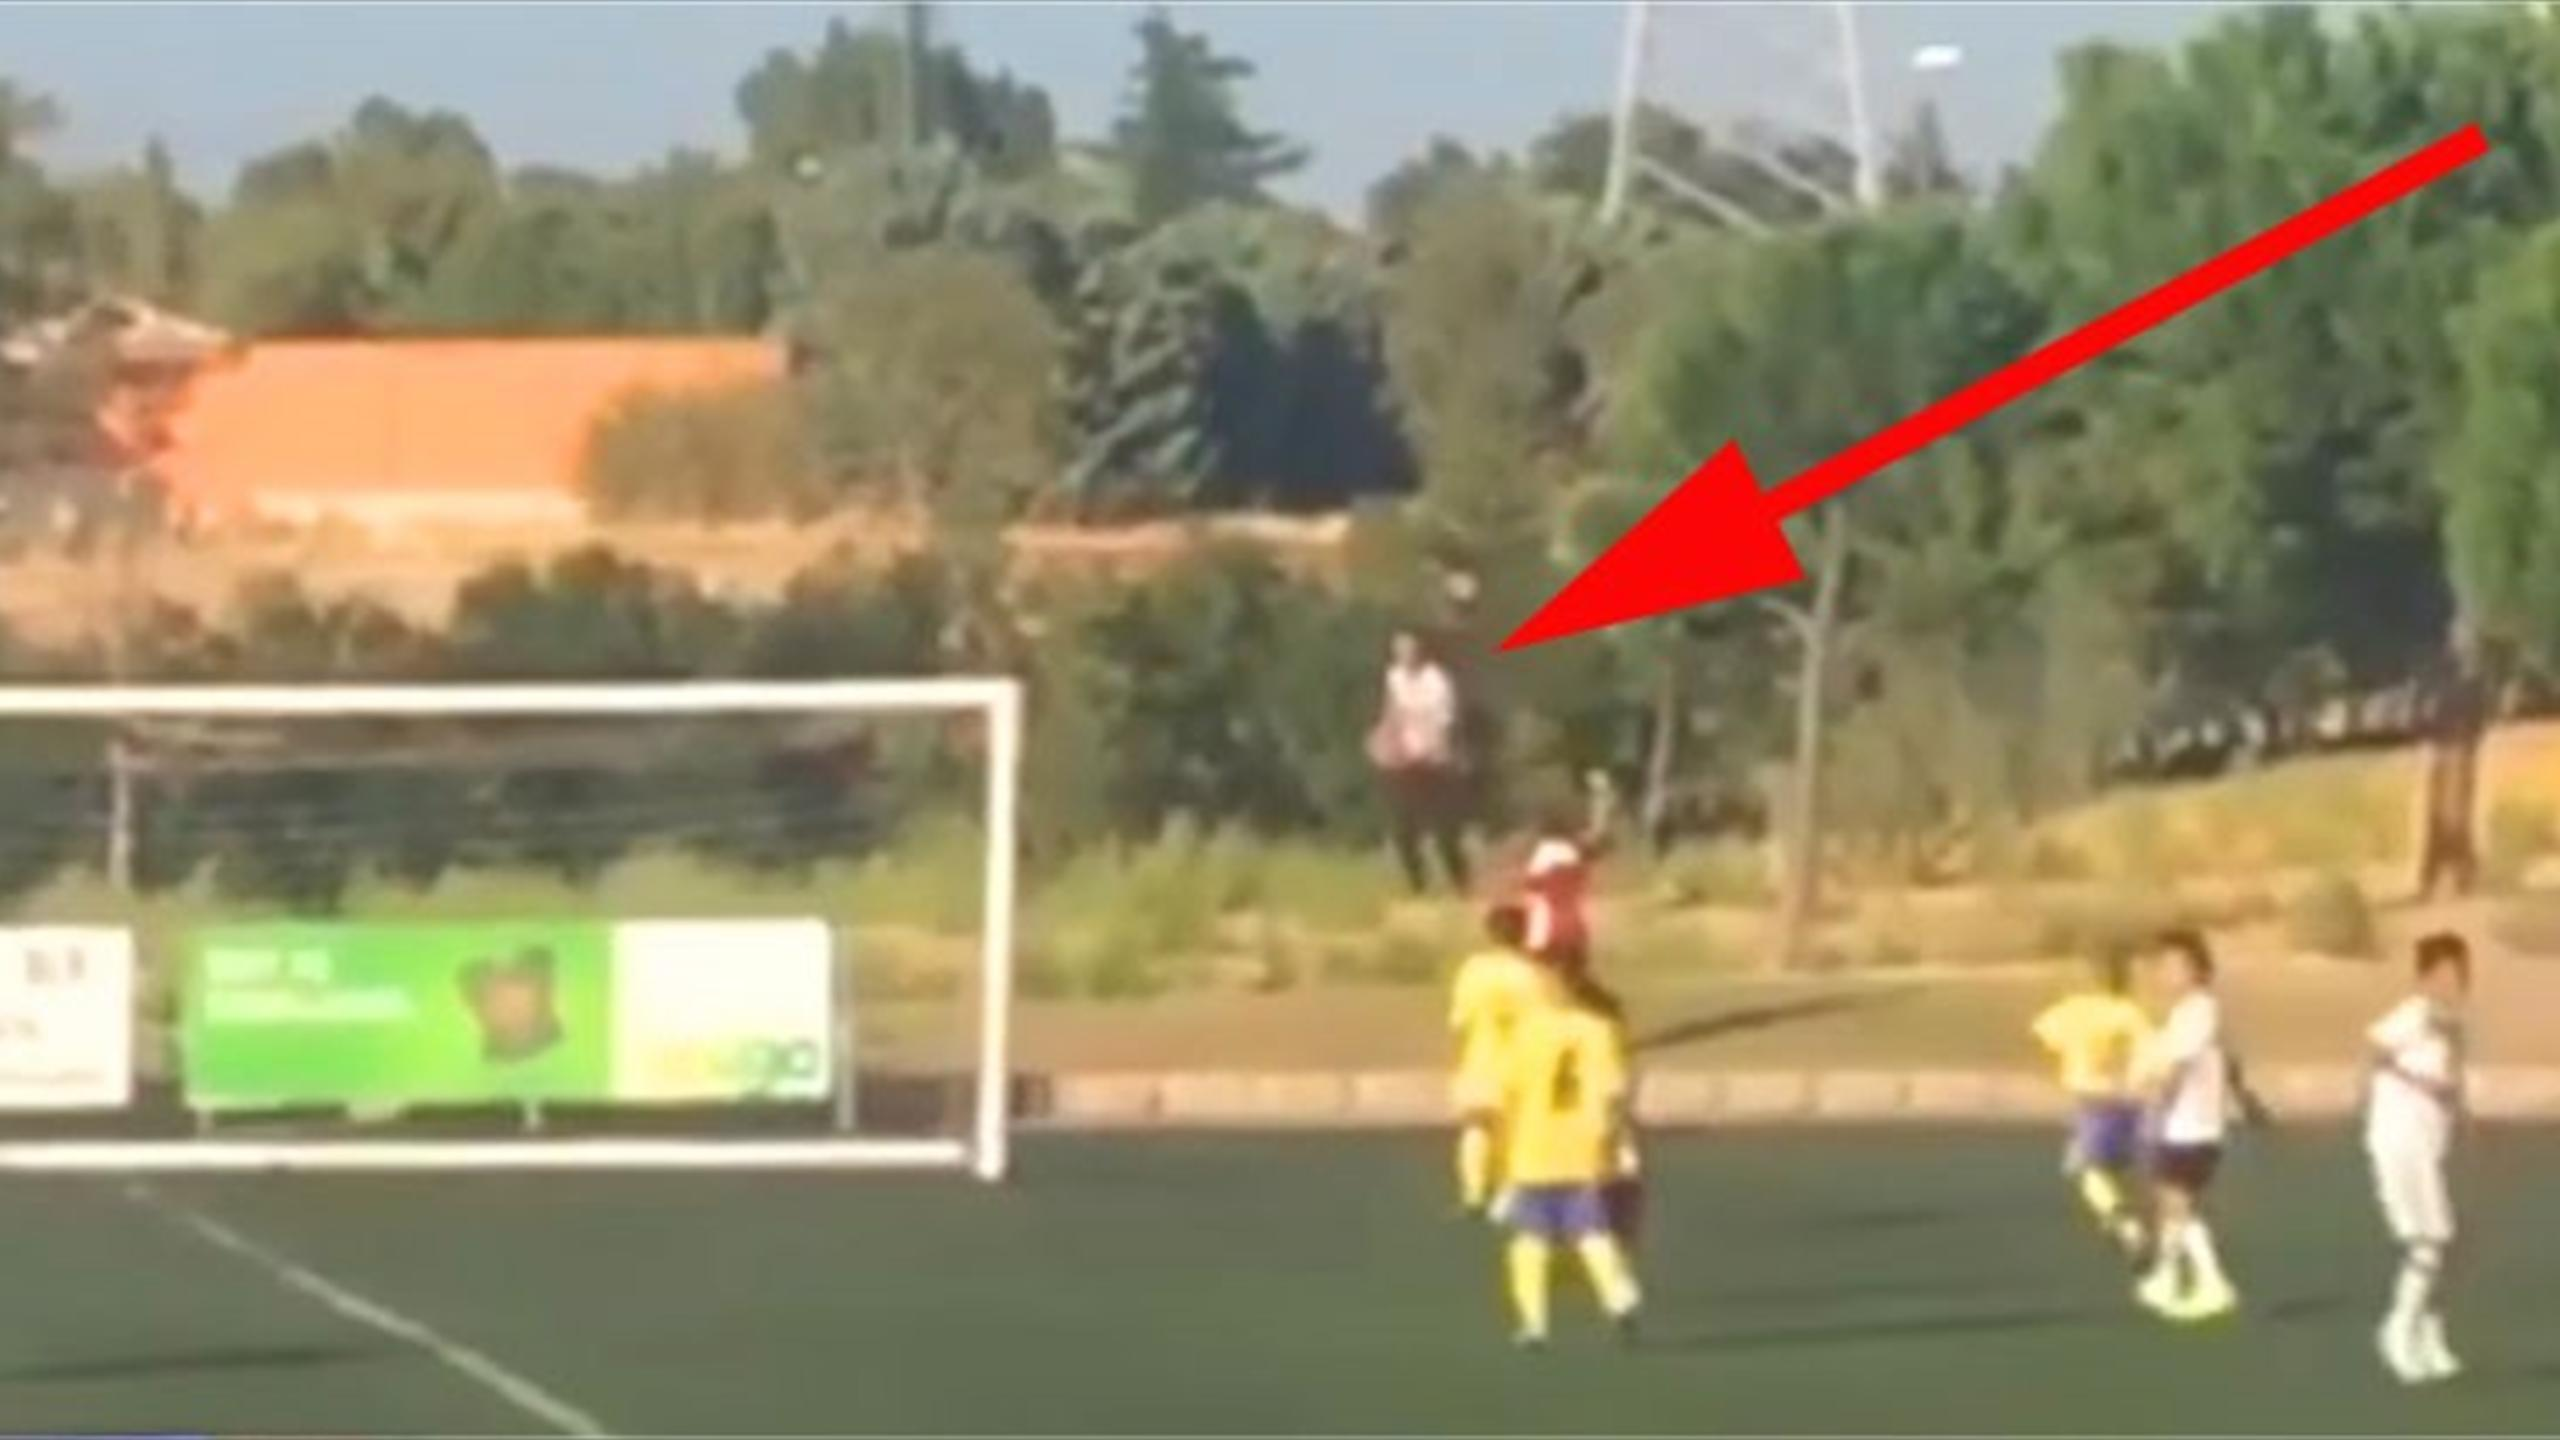 Cristiano Ronaldo becomes ball boy in sweet moment while watching his son play (Youtube)